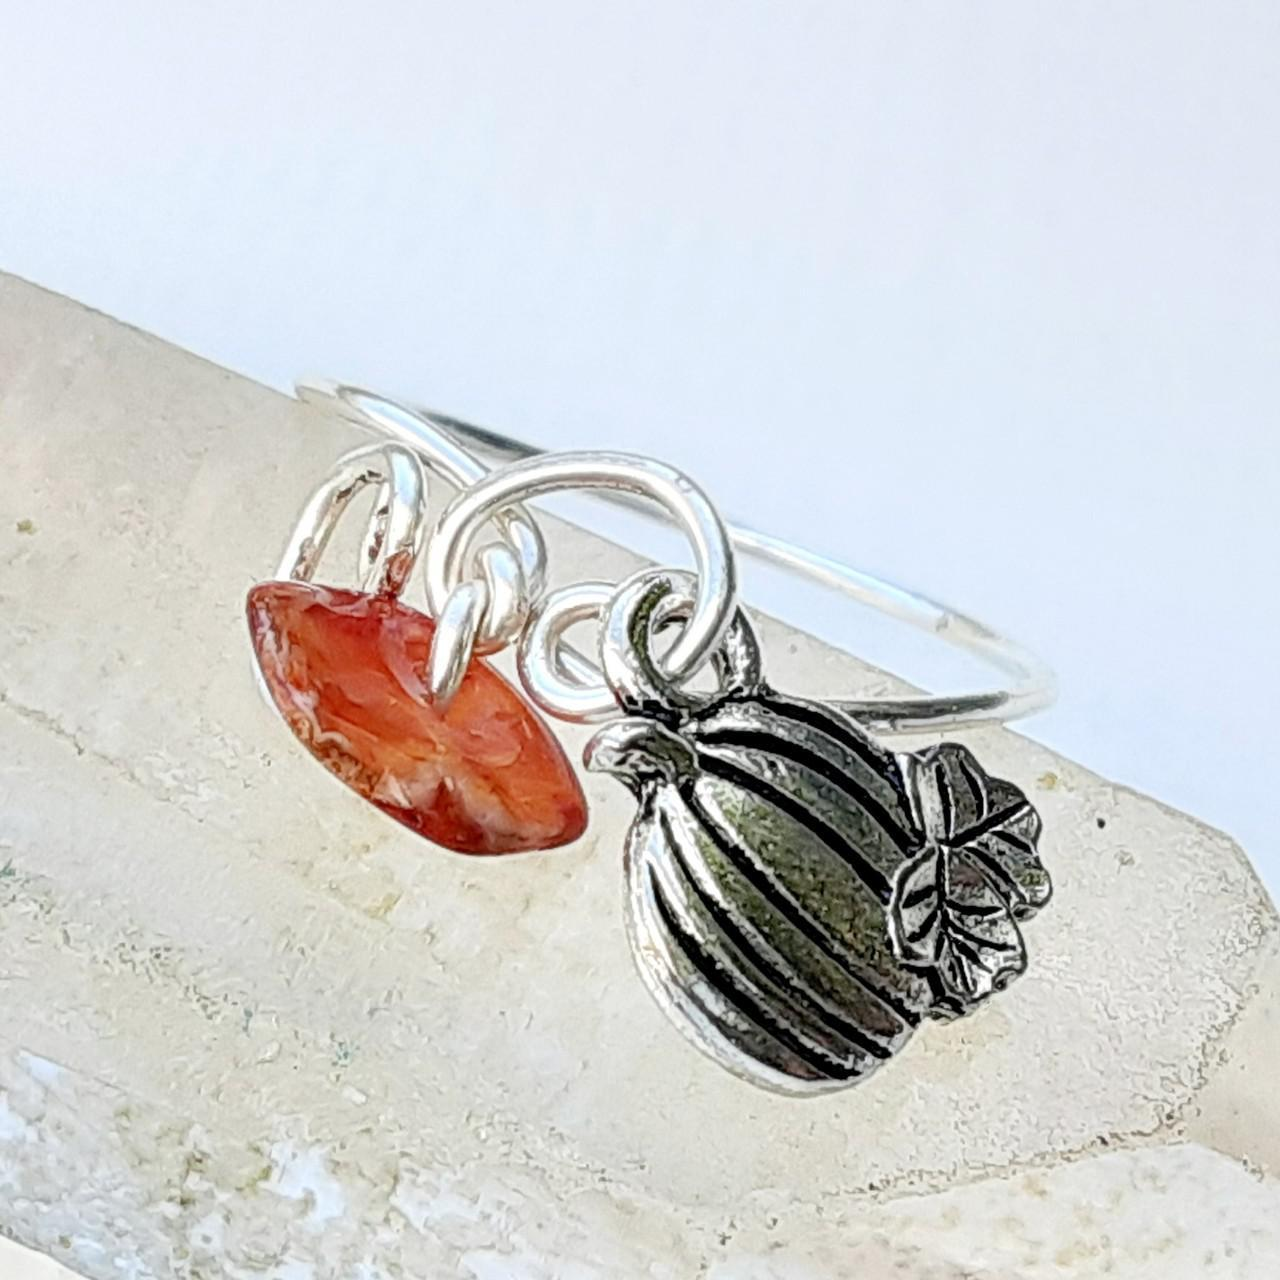 Product Image 1 - Crystal ring. Tarnish resistant silver wire